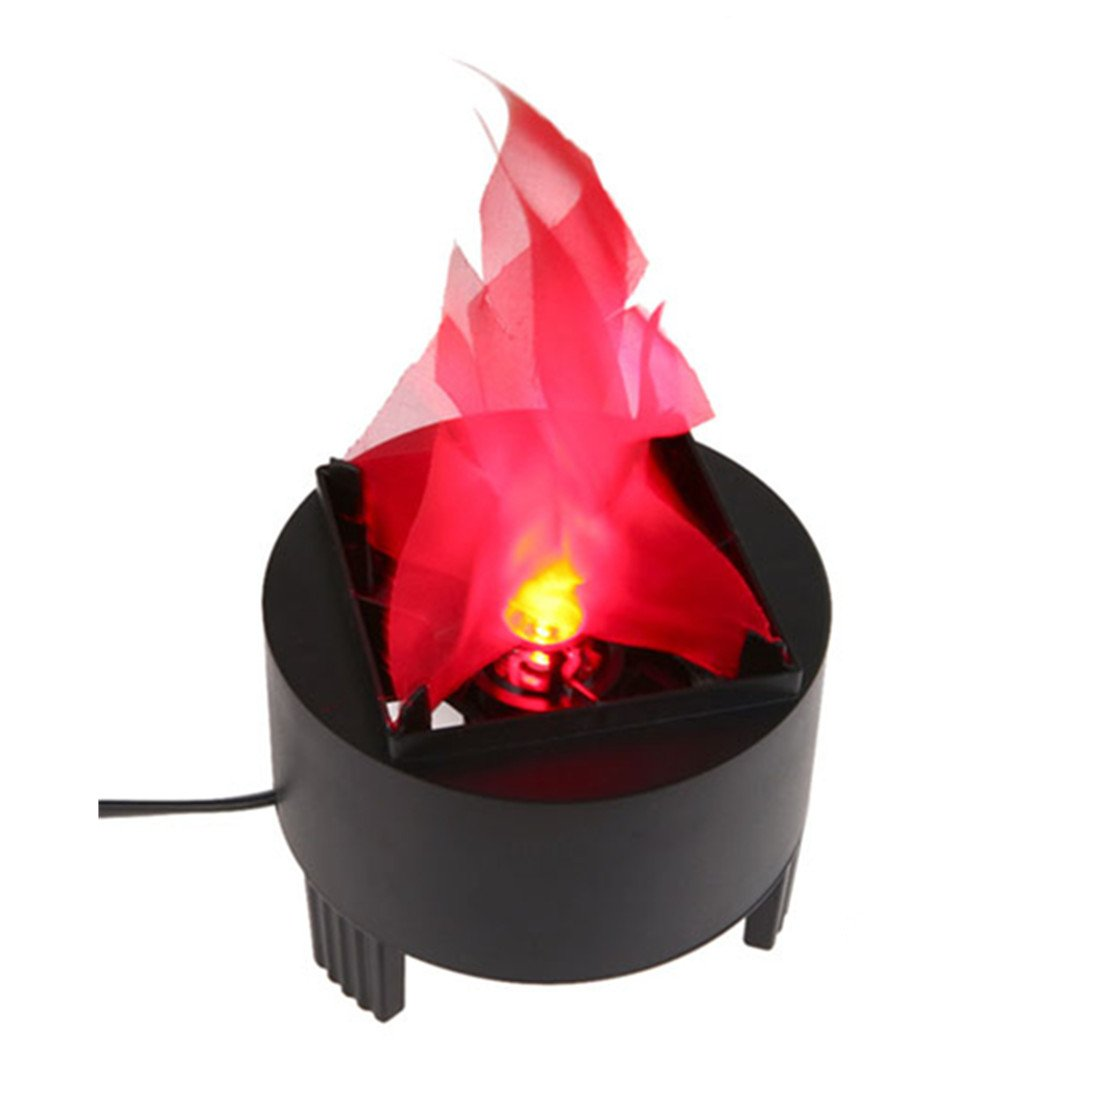 US Plug Portable Electronic 3W LED Fake Fire Flame Simulated Flame Effect Light Campfire Centerpiece with Pot Bowl for Halloween Christmas Night Clubs Party Home Decor